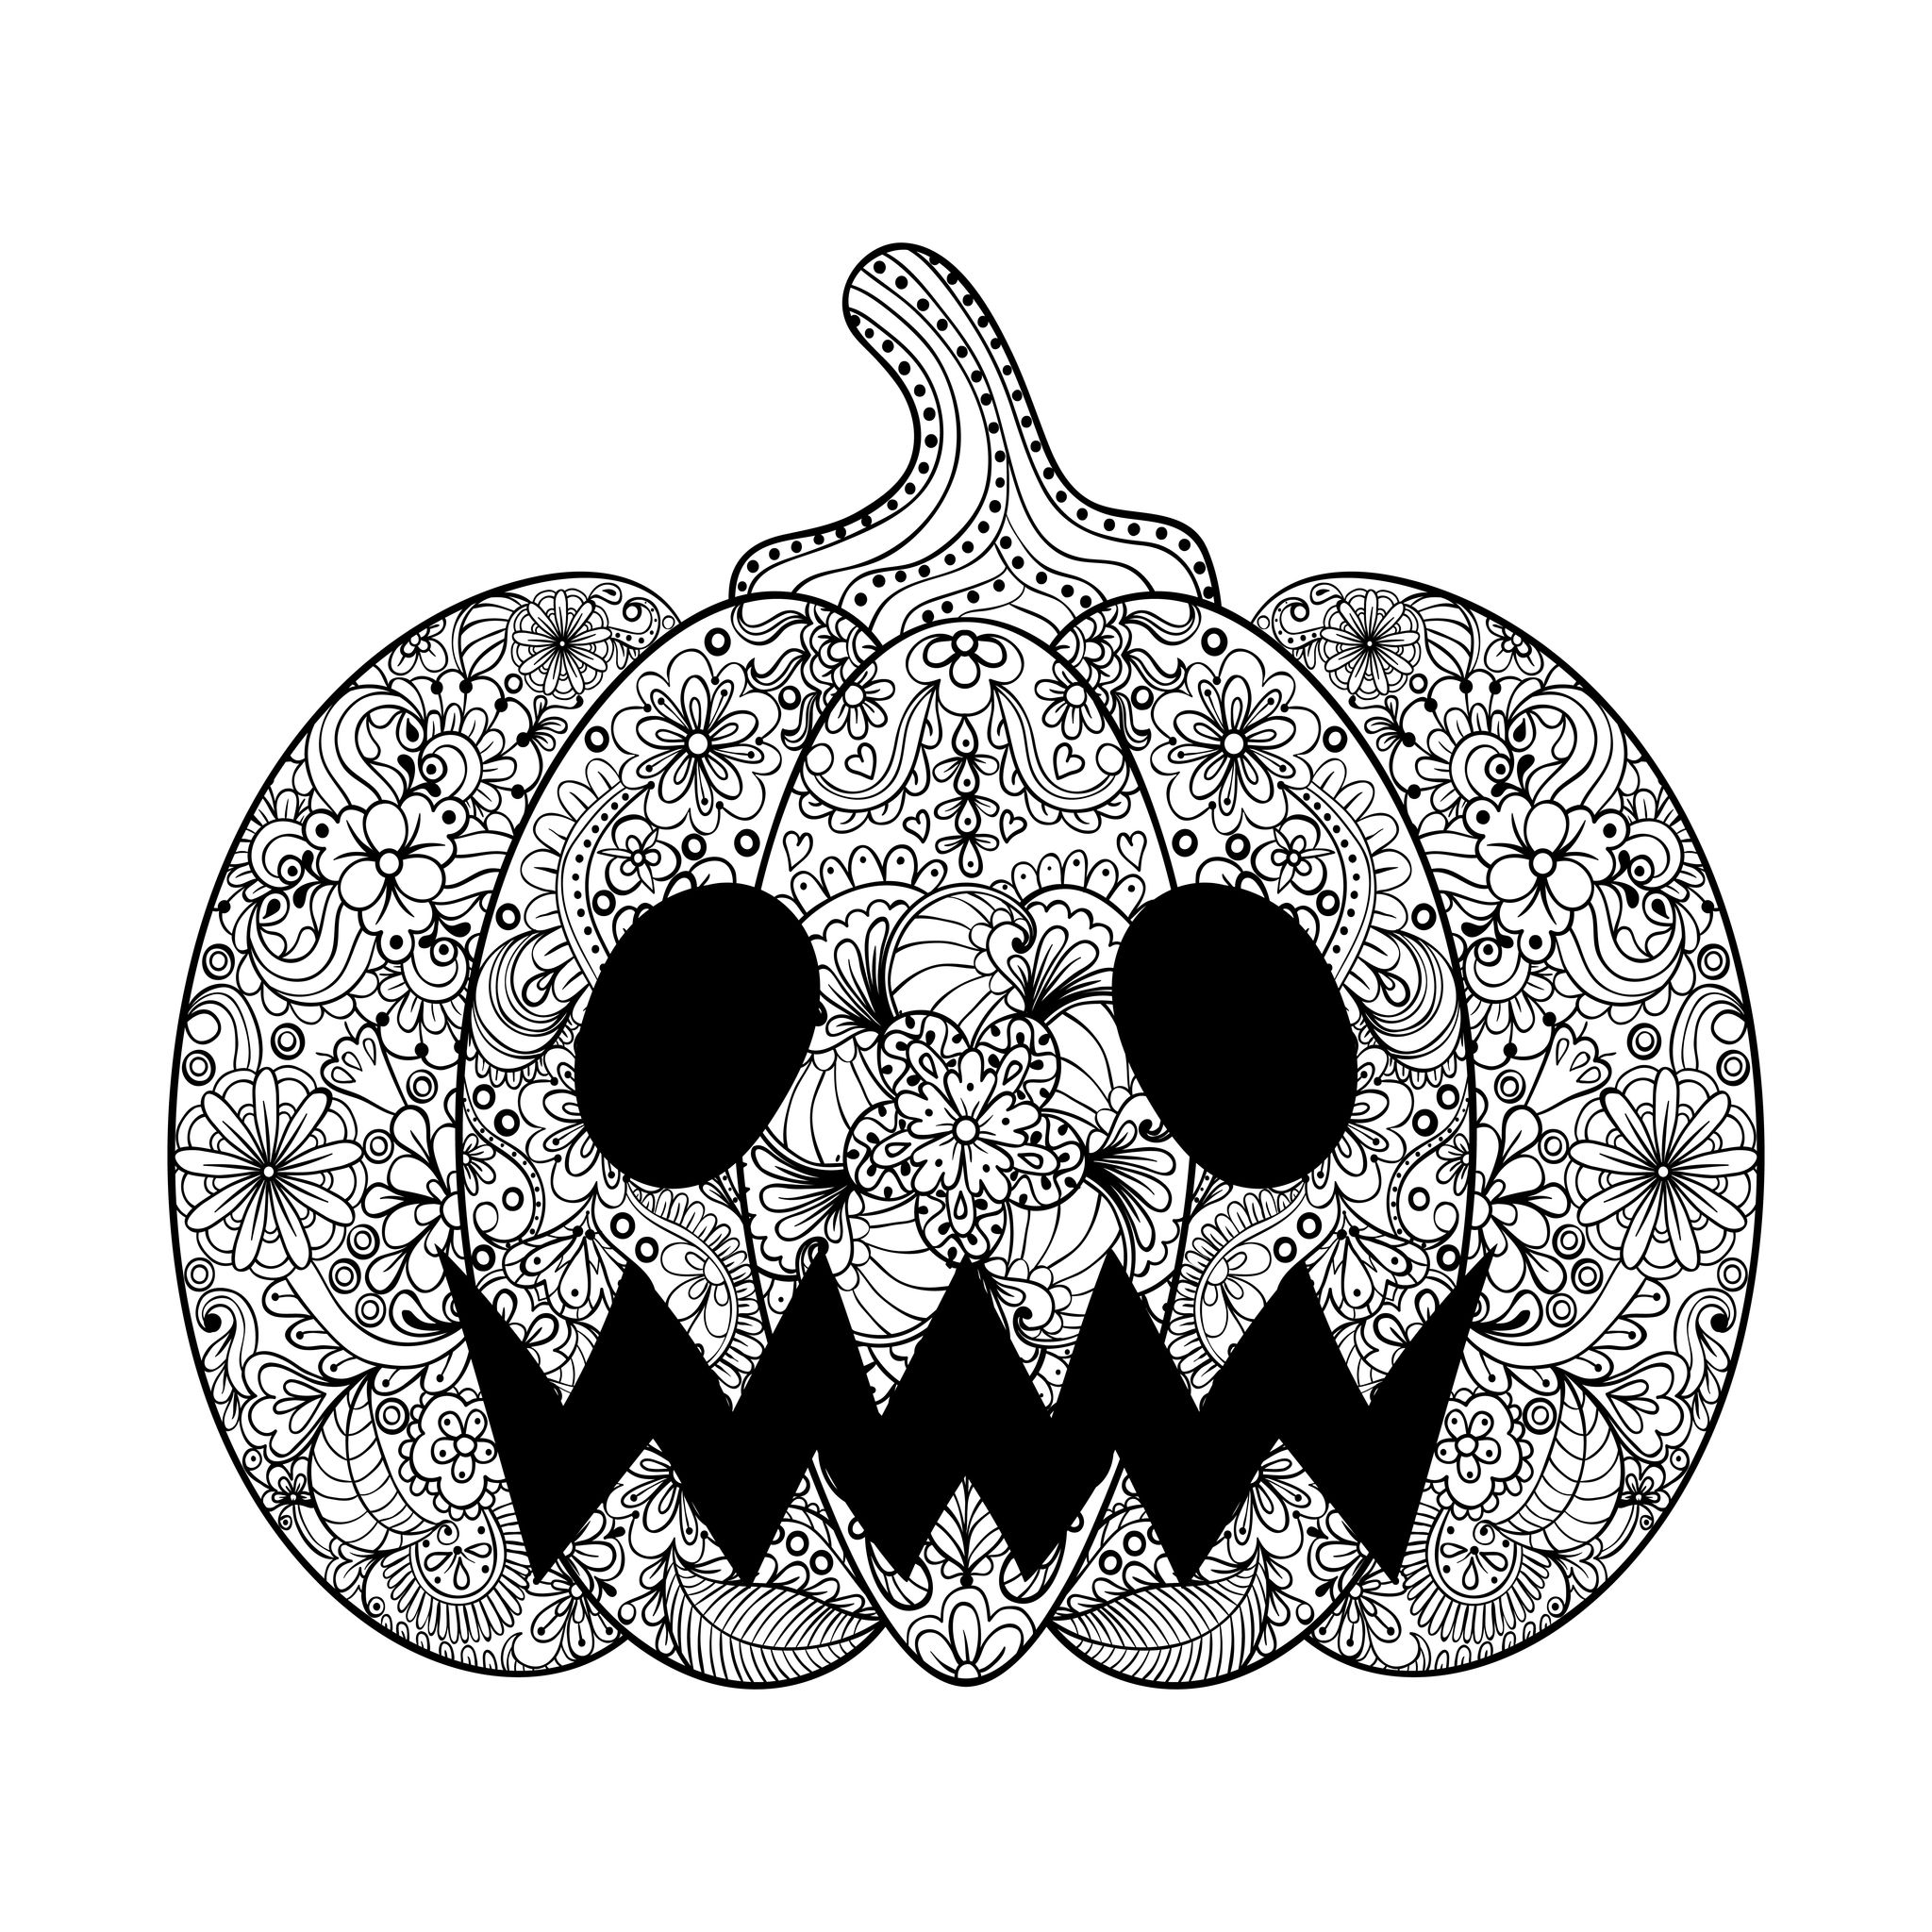 Coloring adult halloween scary pumpkin by ipanki